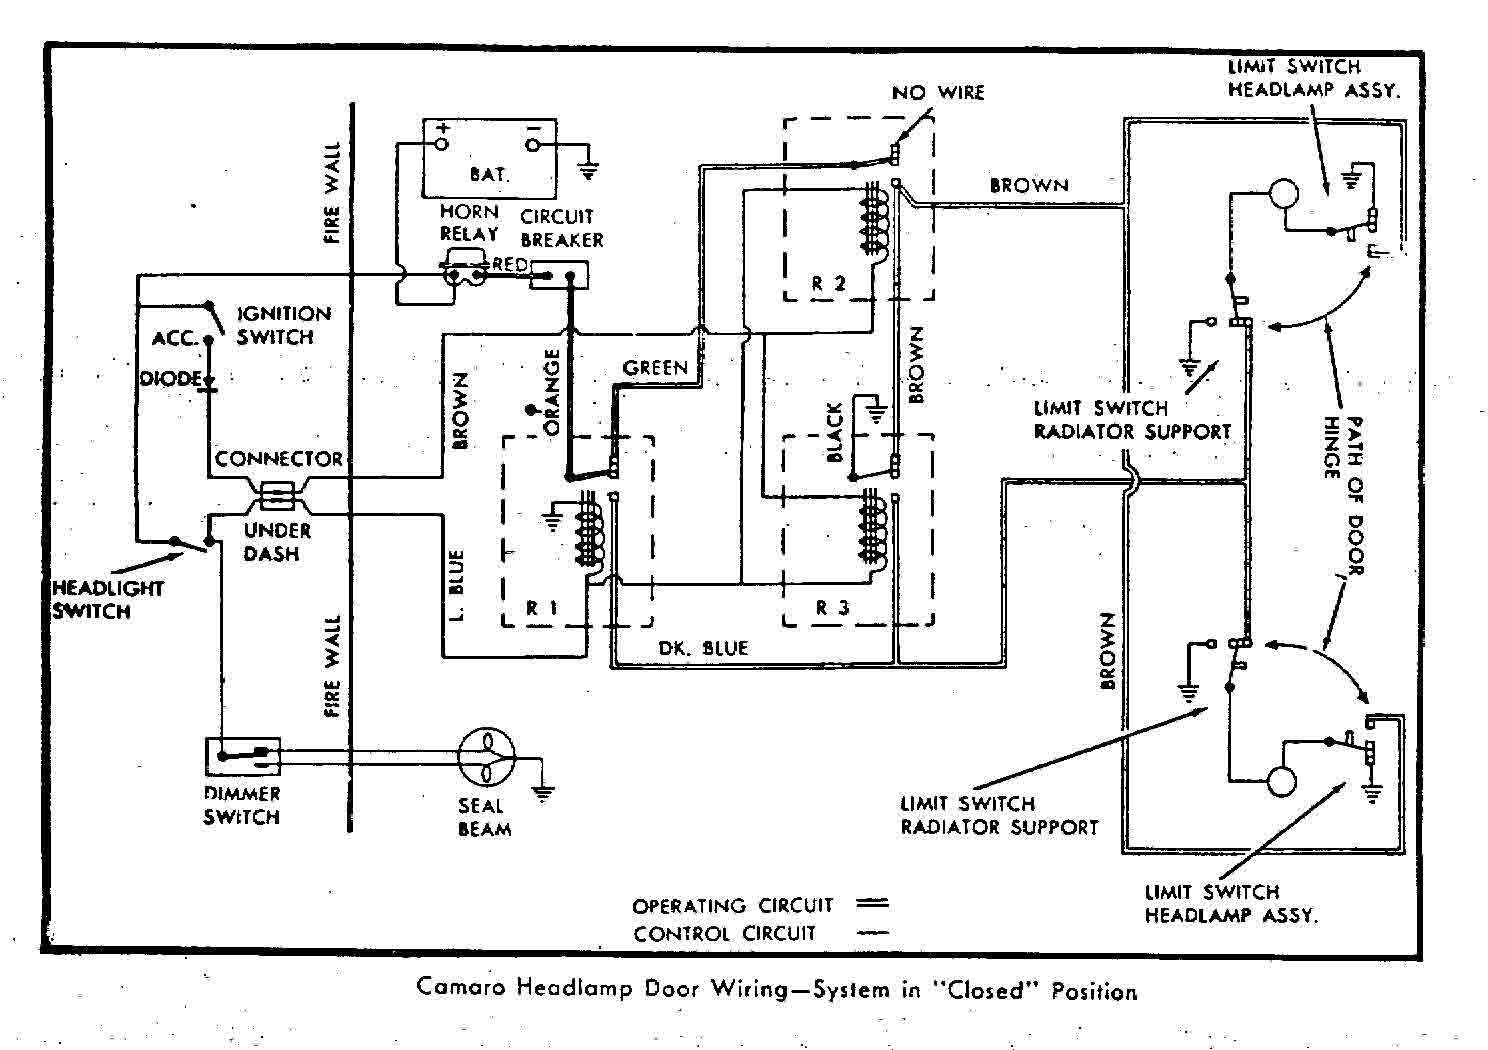 1967 camaro fuse box parts example electrical wiring diagram u2022 rh olkha co